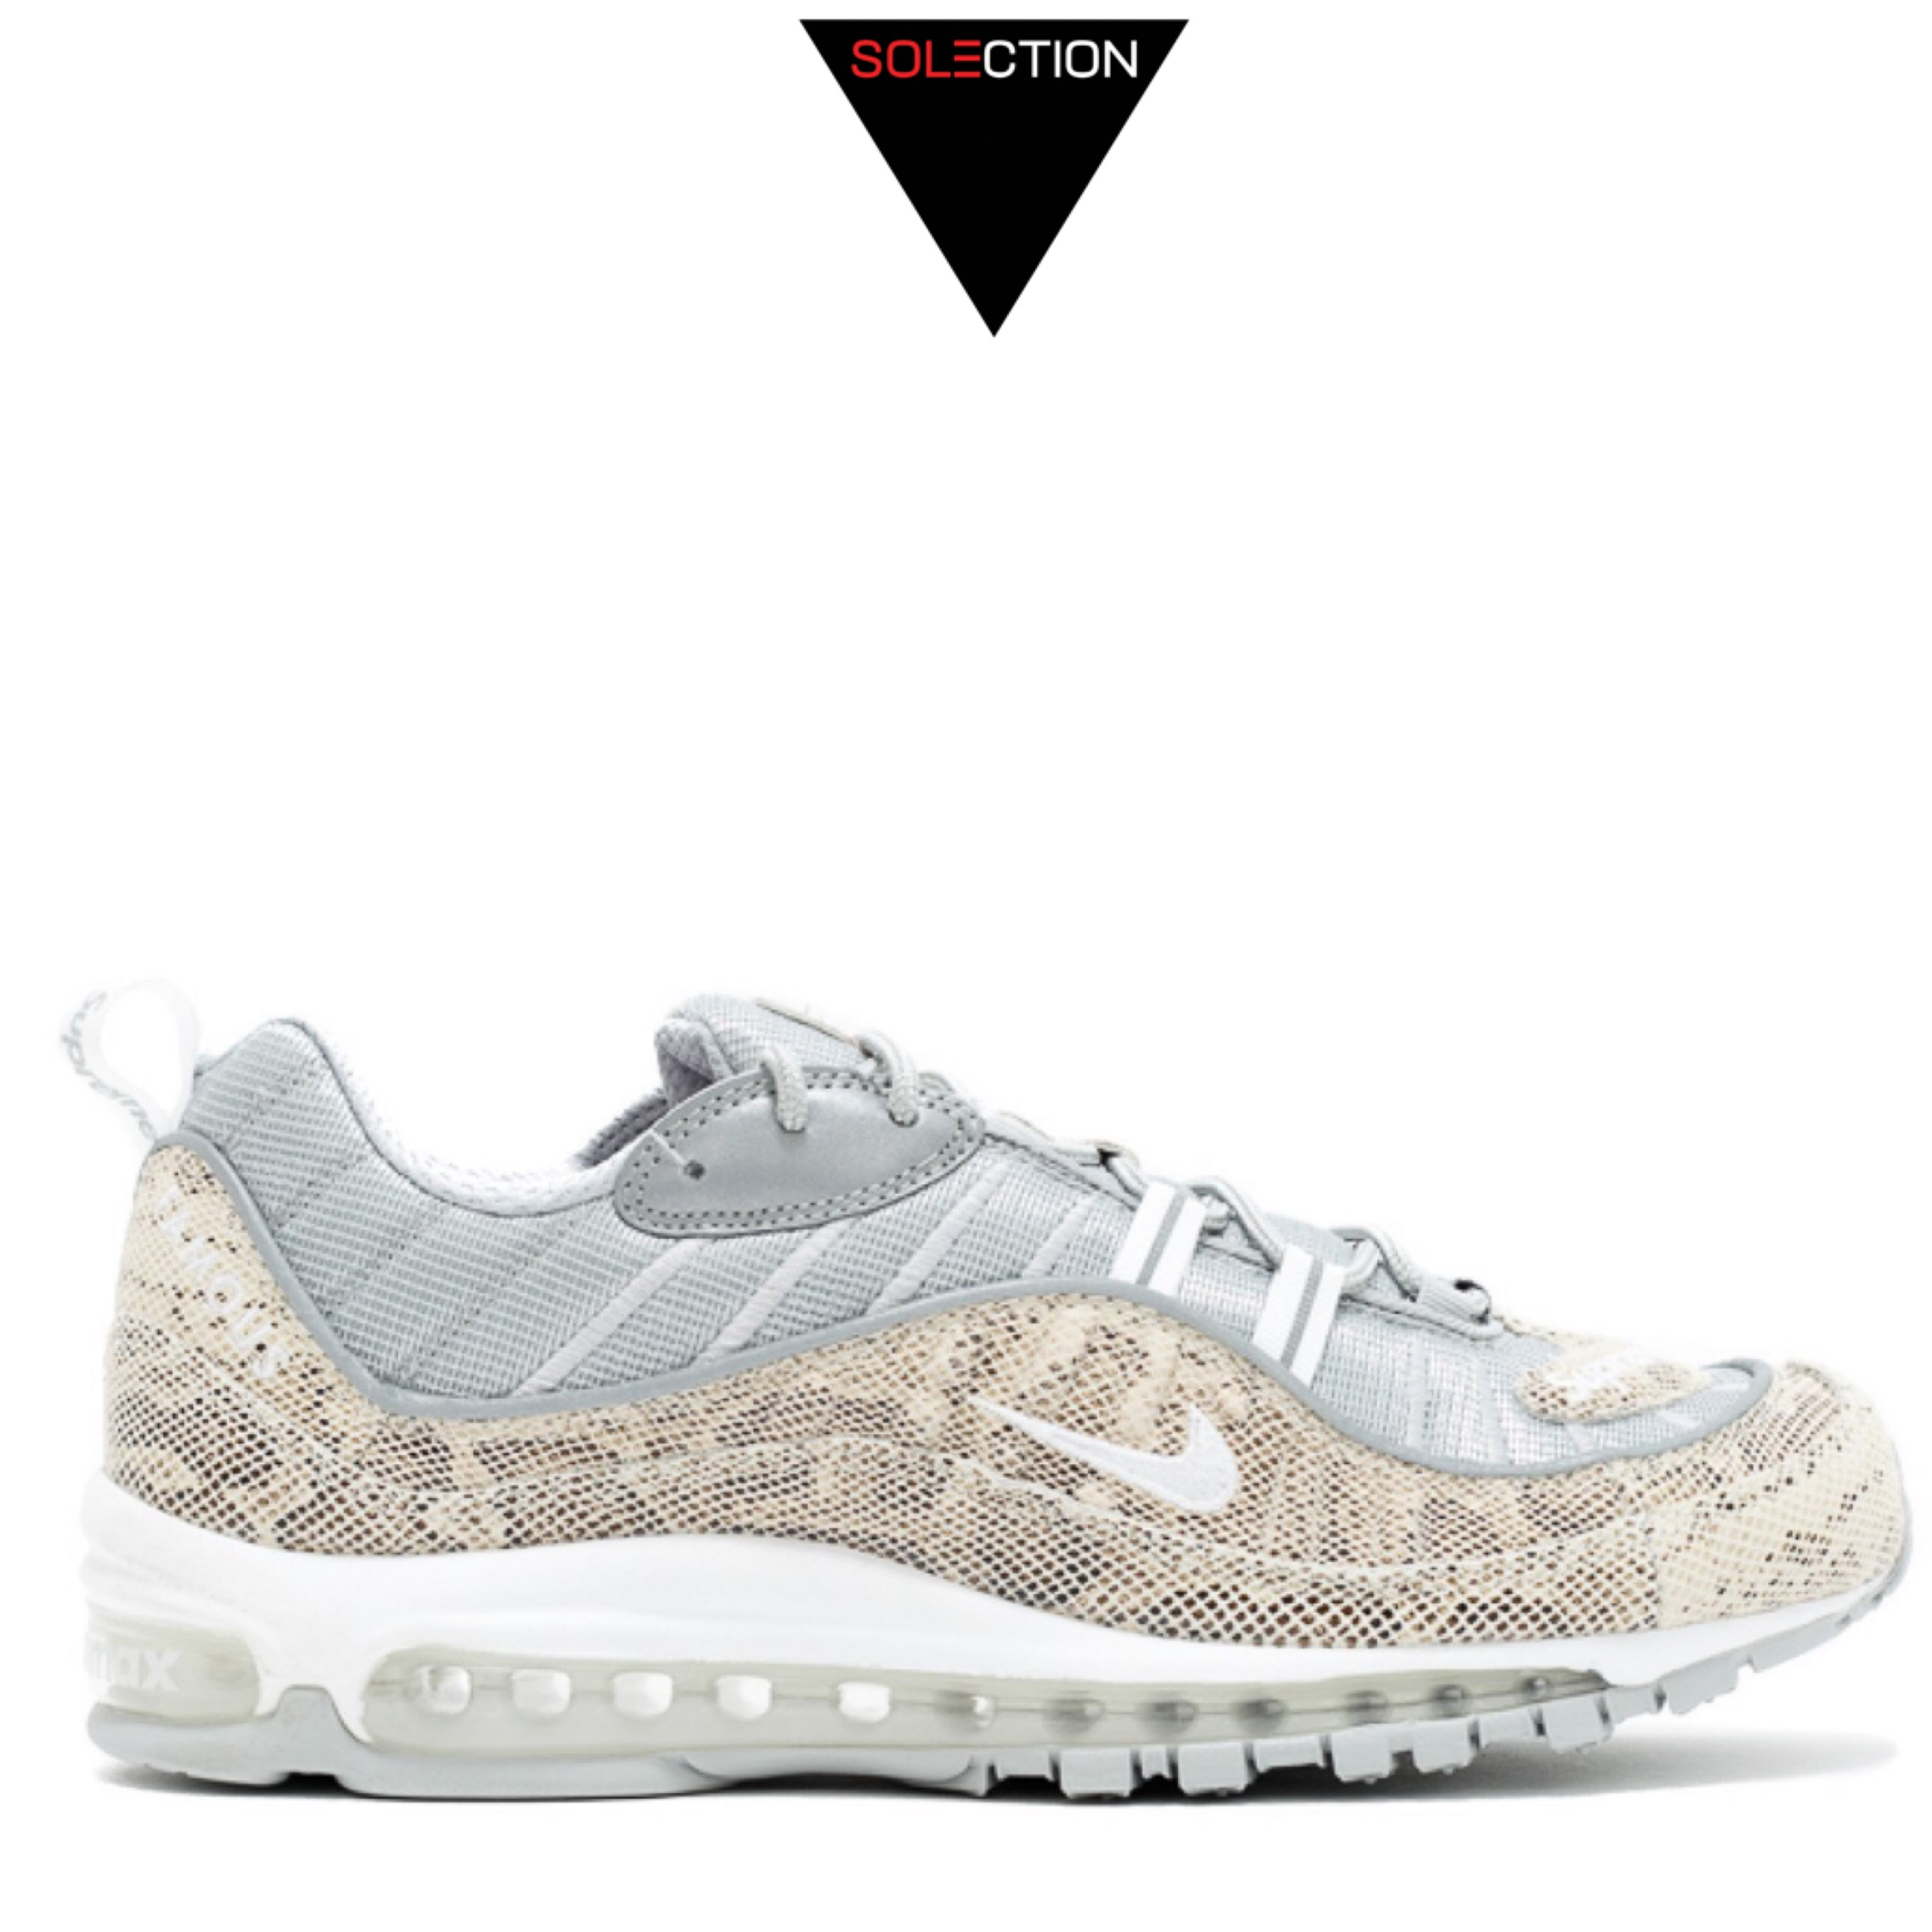 buy popular deea9 1d5ef Nike Air Max 98 Supreme